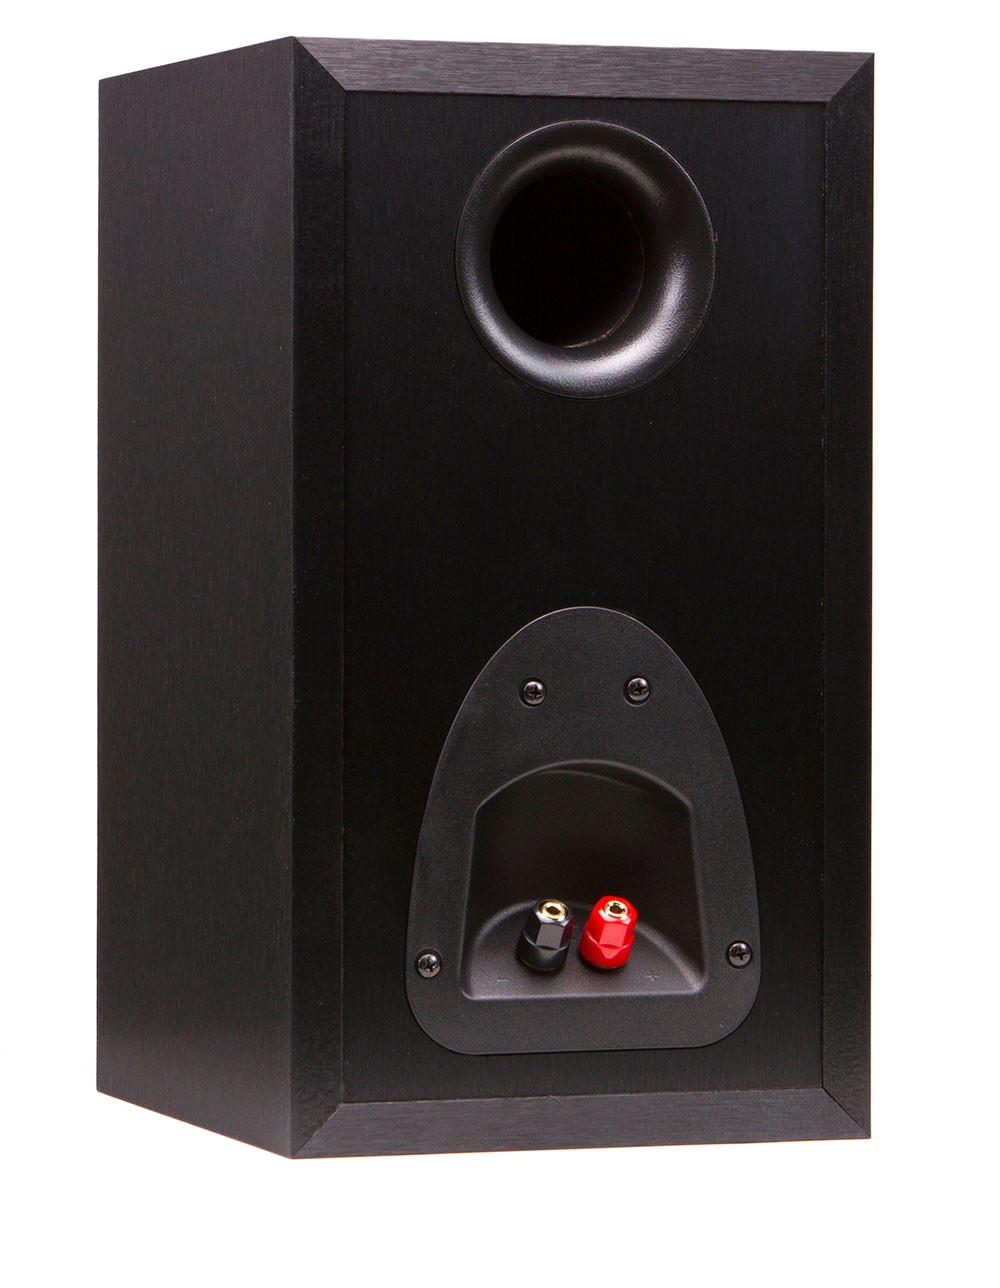 Buy Klipsch R14M Bookshelf Speakers Online for 24999CAD